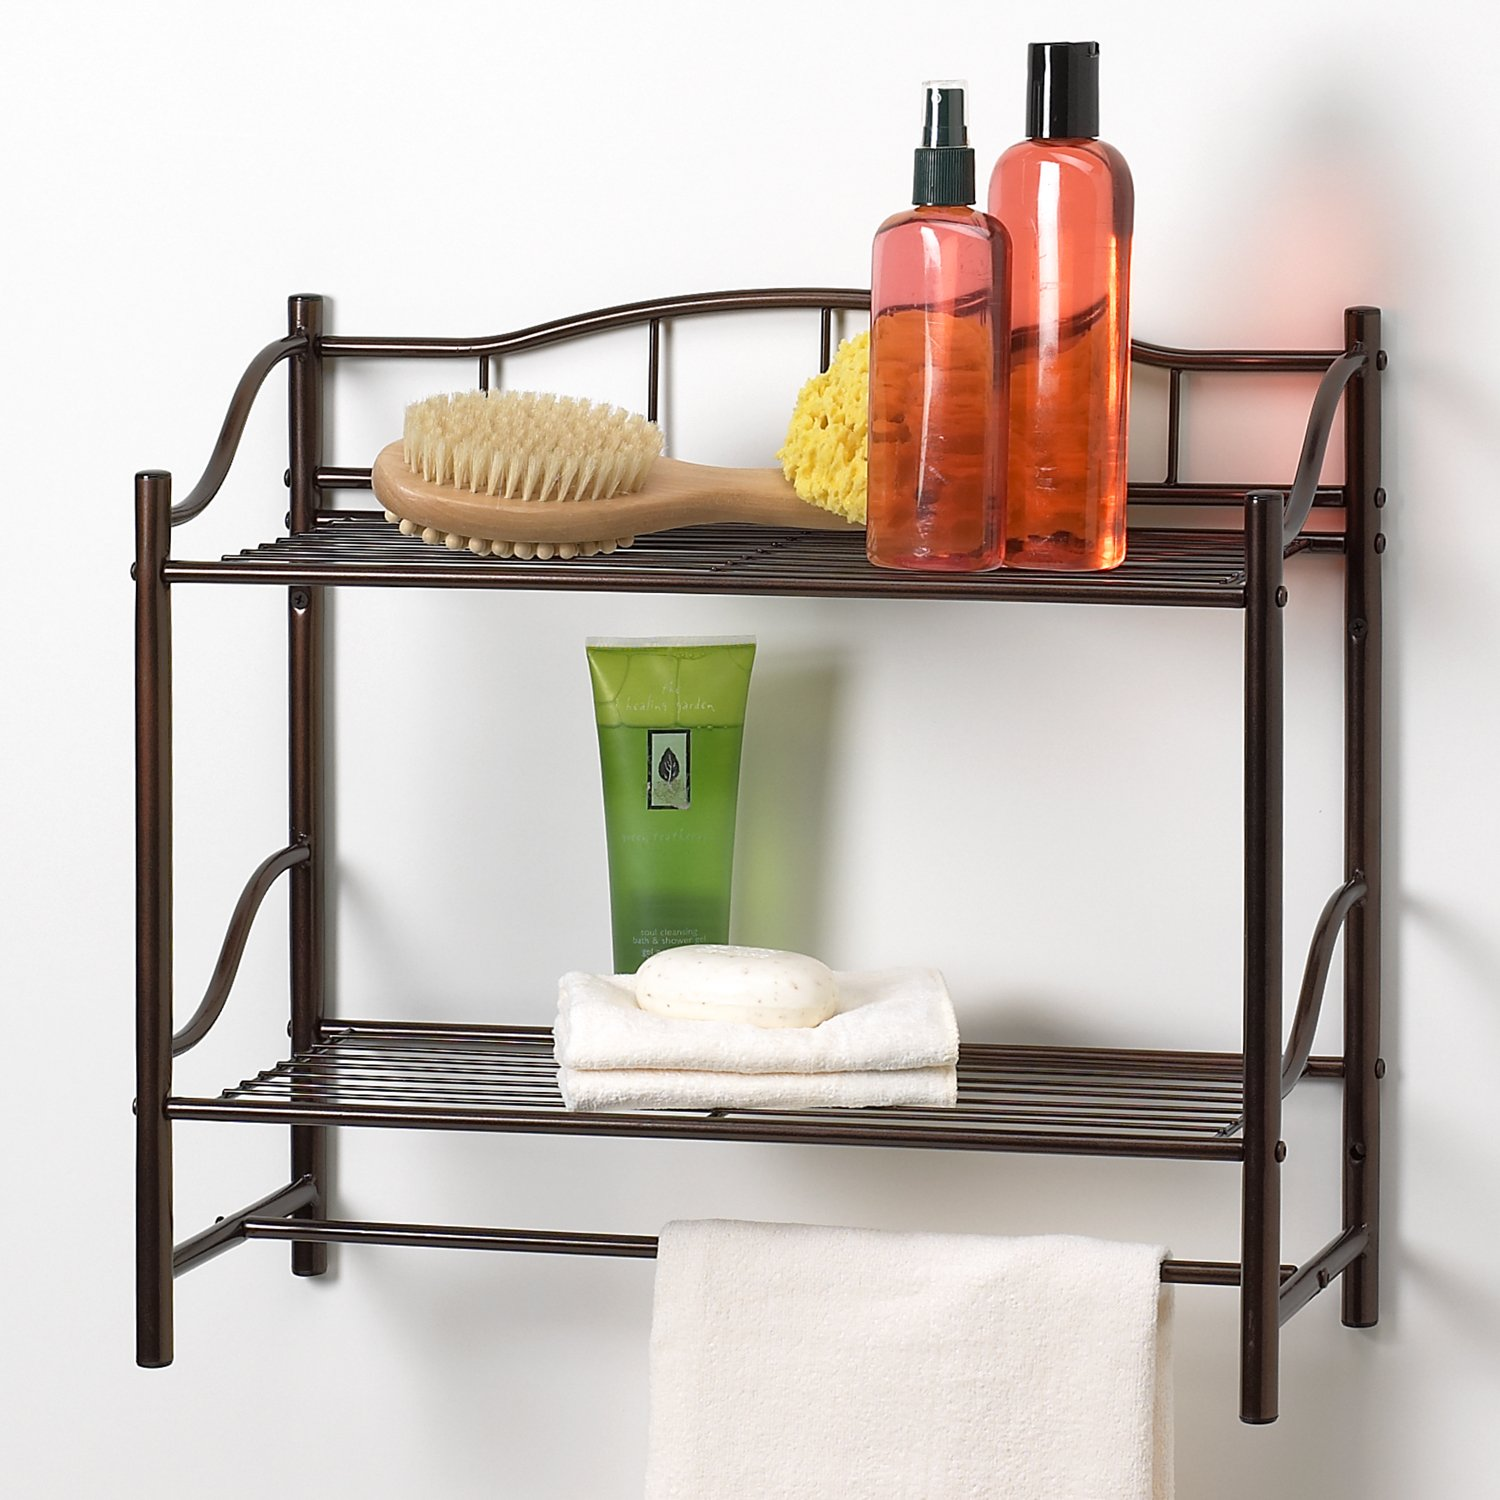 bathroom 2 shelf organizer towel bar wall mounted caddy oil rubbed bronze modern